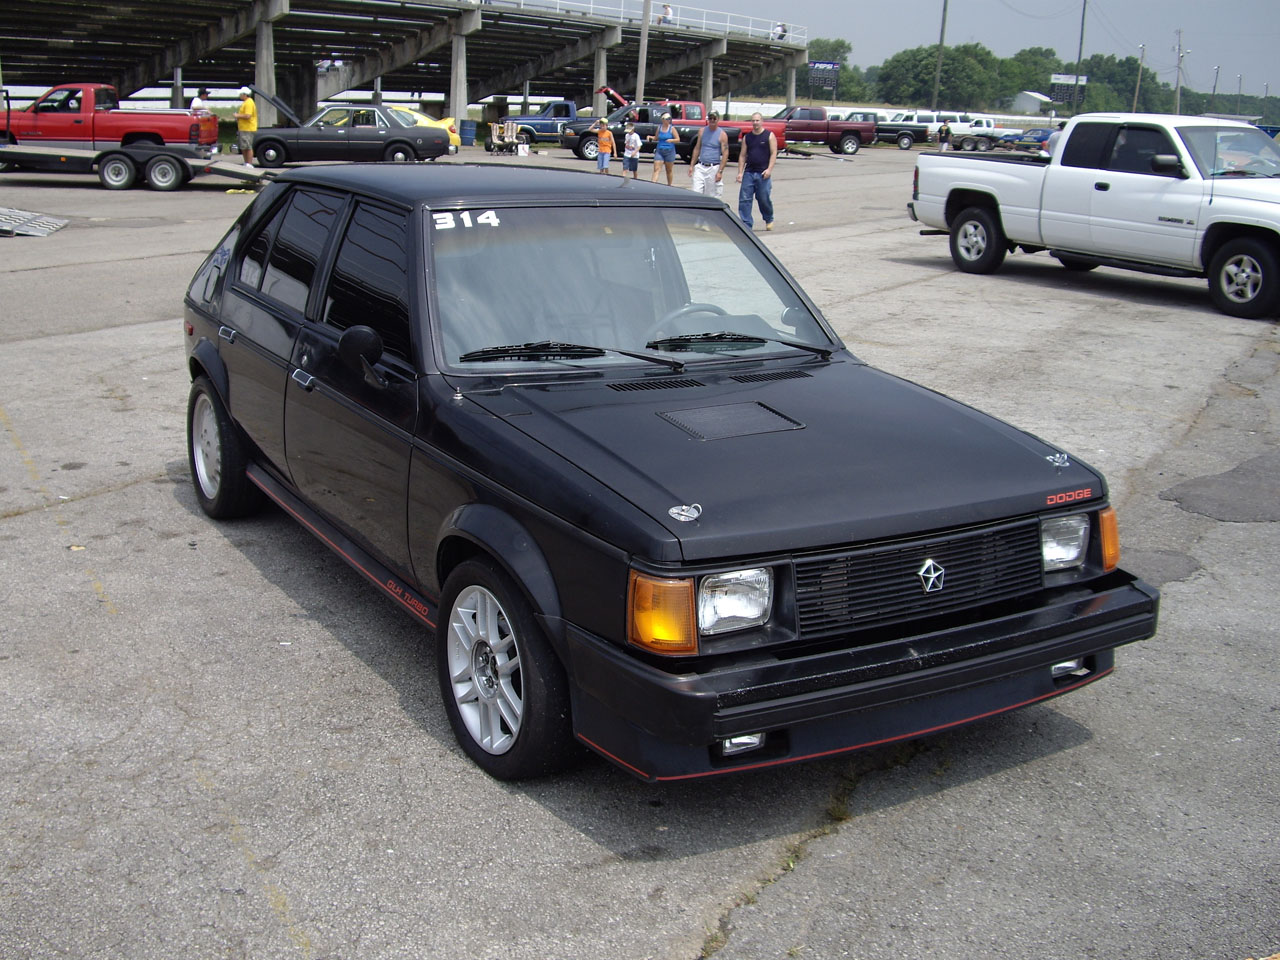 1989 Dodge Omni for Sale 1 - Dodge Omni - 1989 Dodge Omni for Sale 1